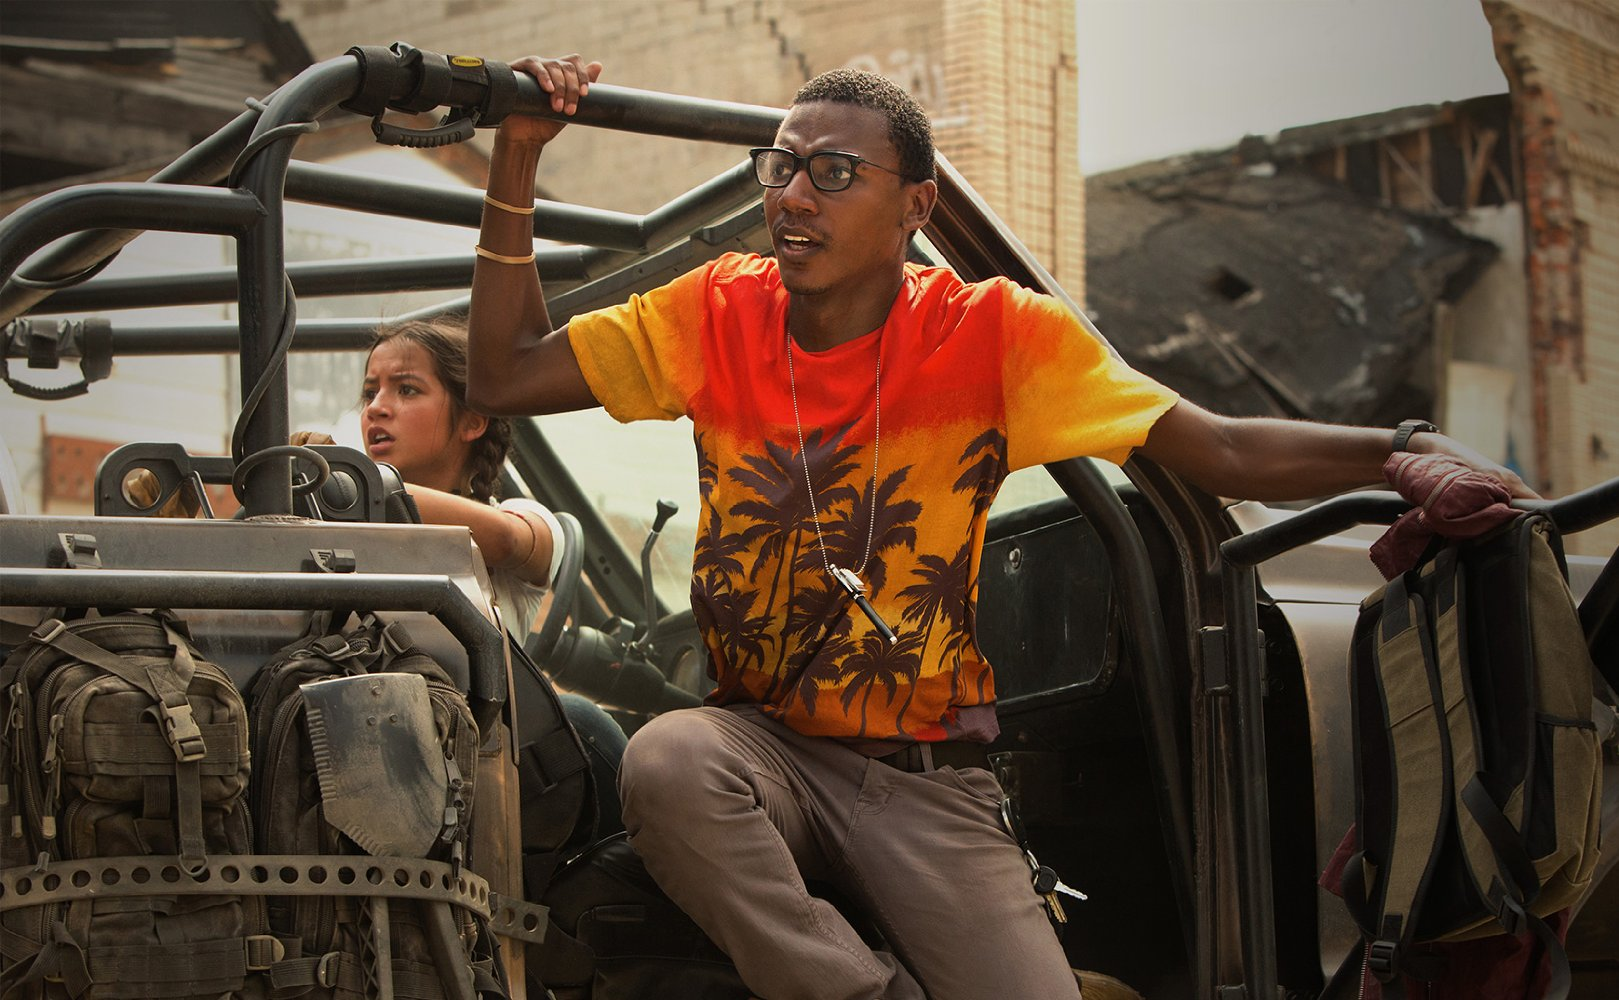 Jerrod Carmichael and Isabela Moner in Transformers The Last Knight (2017)